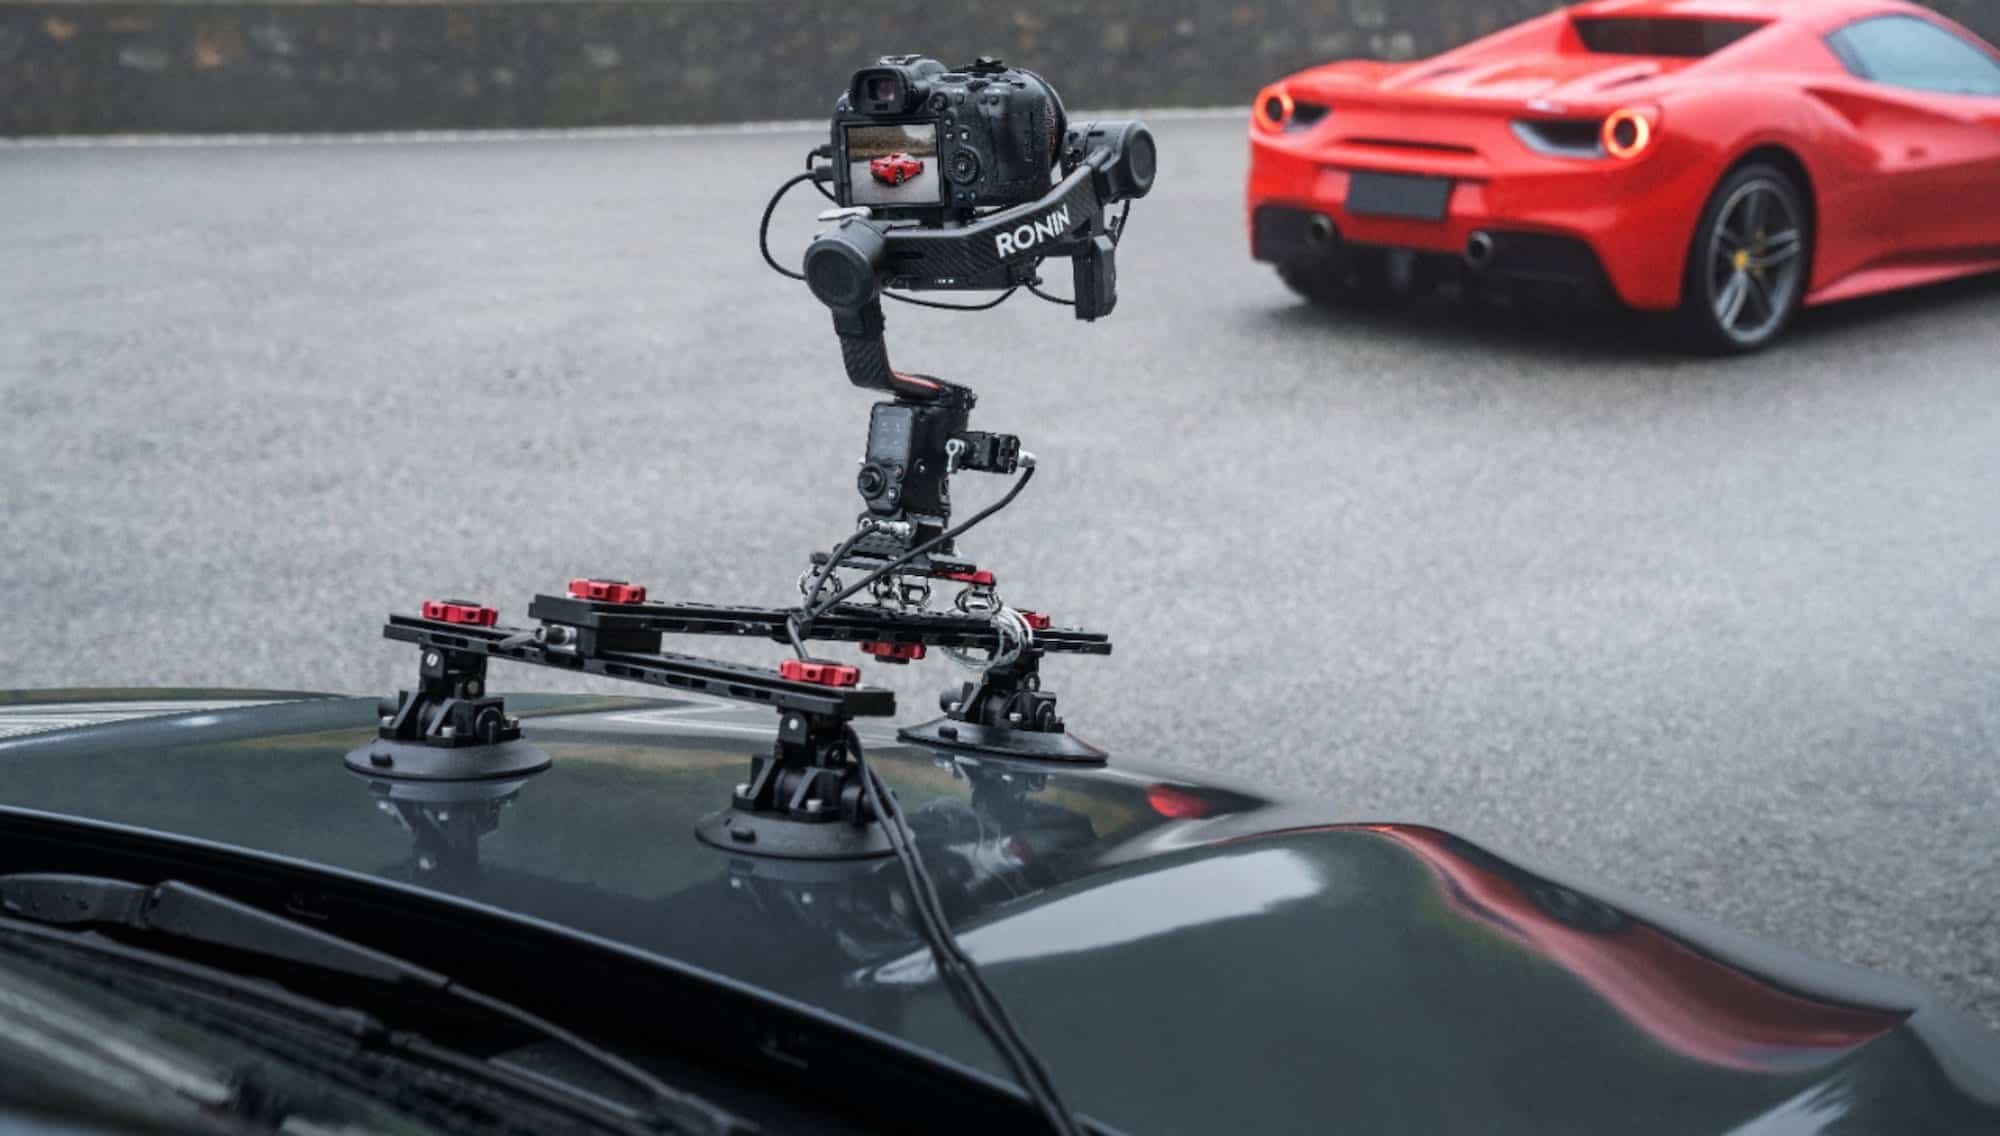 DJI Ronin RS2 and RSC2 photos and price revealed by Best Buy